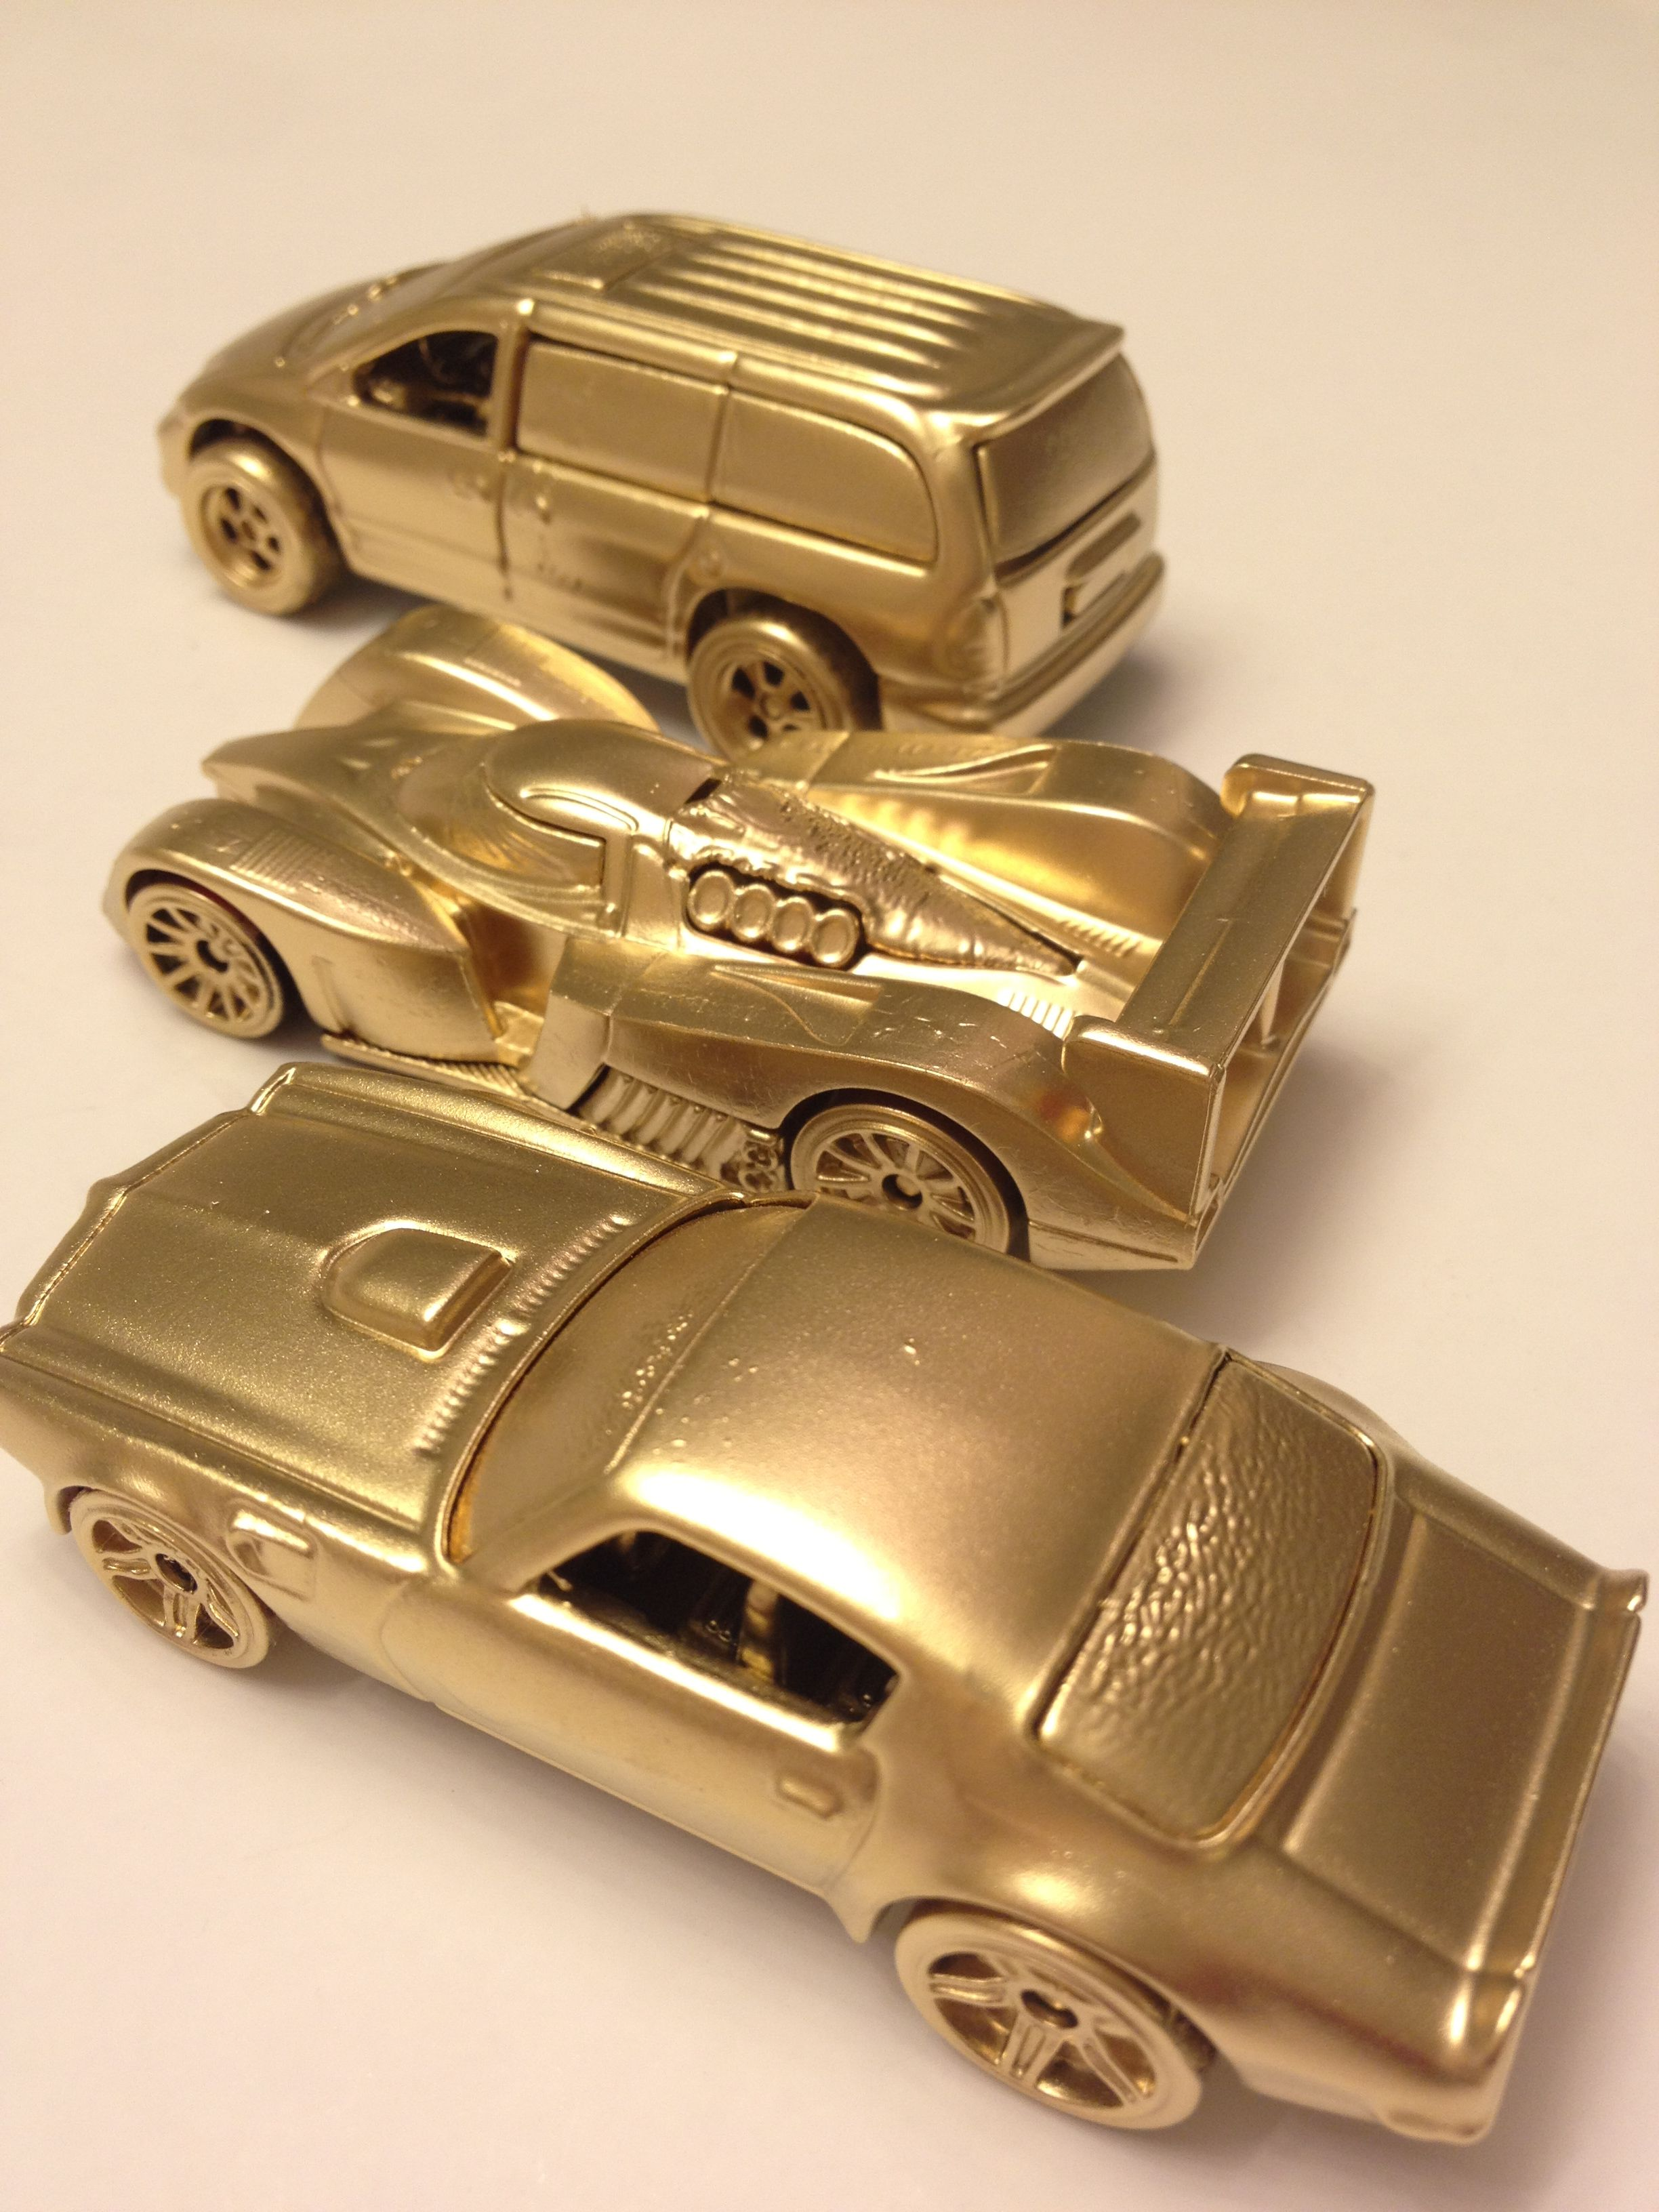 Pin By Holly Hamann On Things My Kid Has Spray Painted Gold Gold Aesthetic Gold Car Gold Beauty